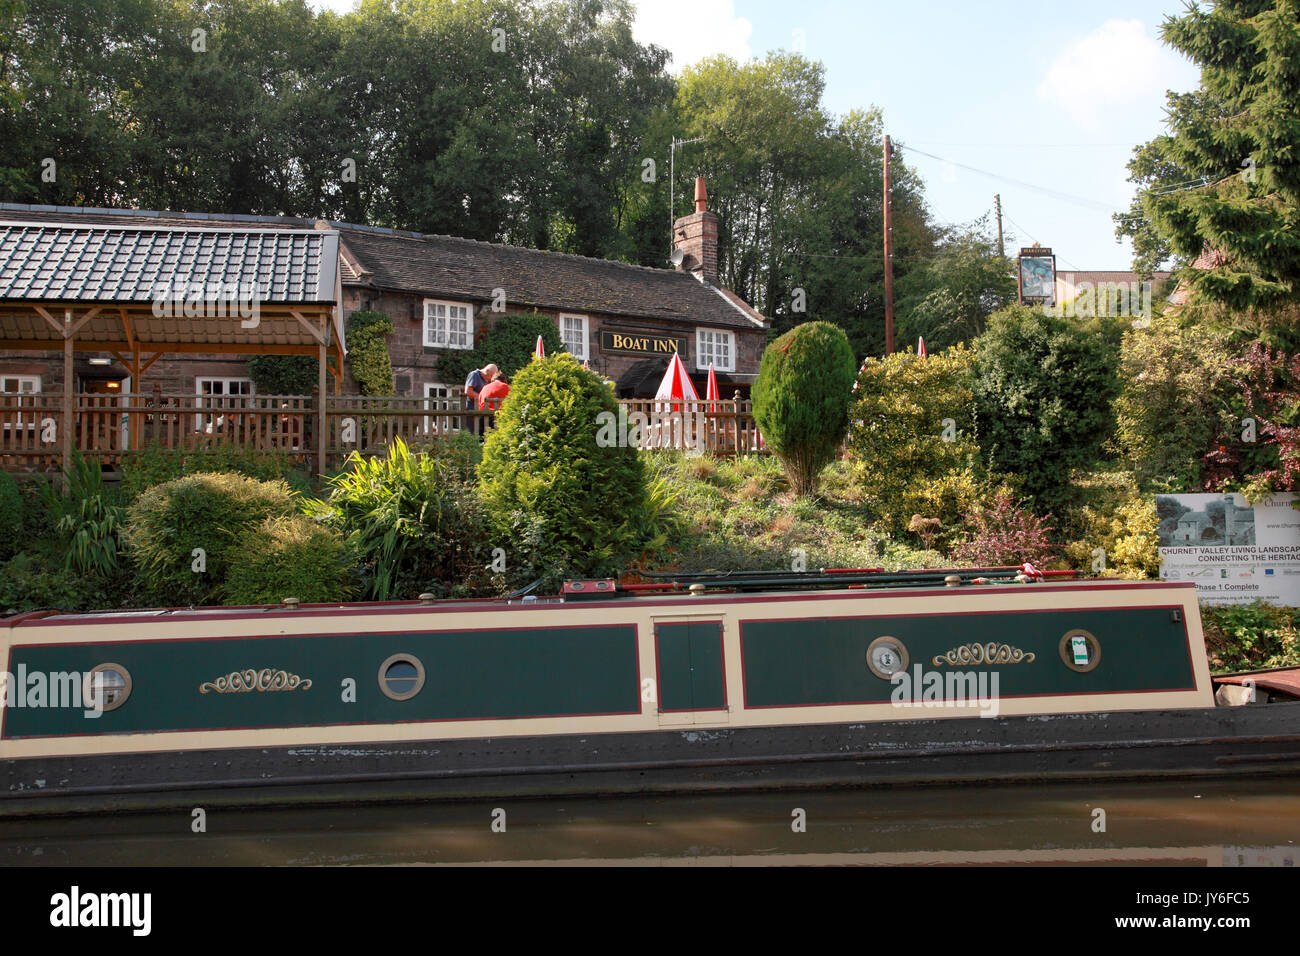 A narrowboat moored outside the Boat Inn by the Caldon Canal, Cheddleton, Staffordshire - Stock Image